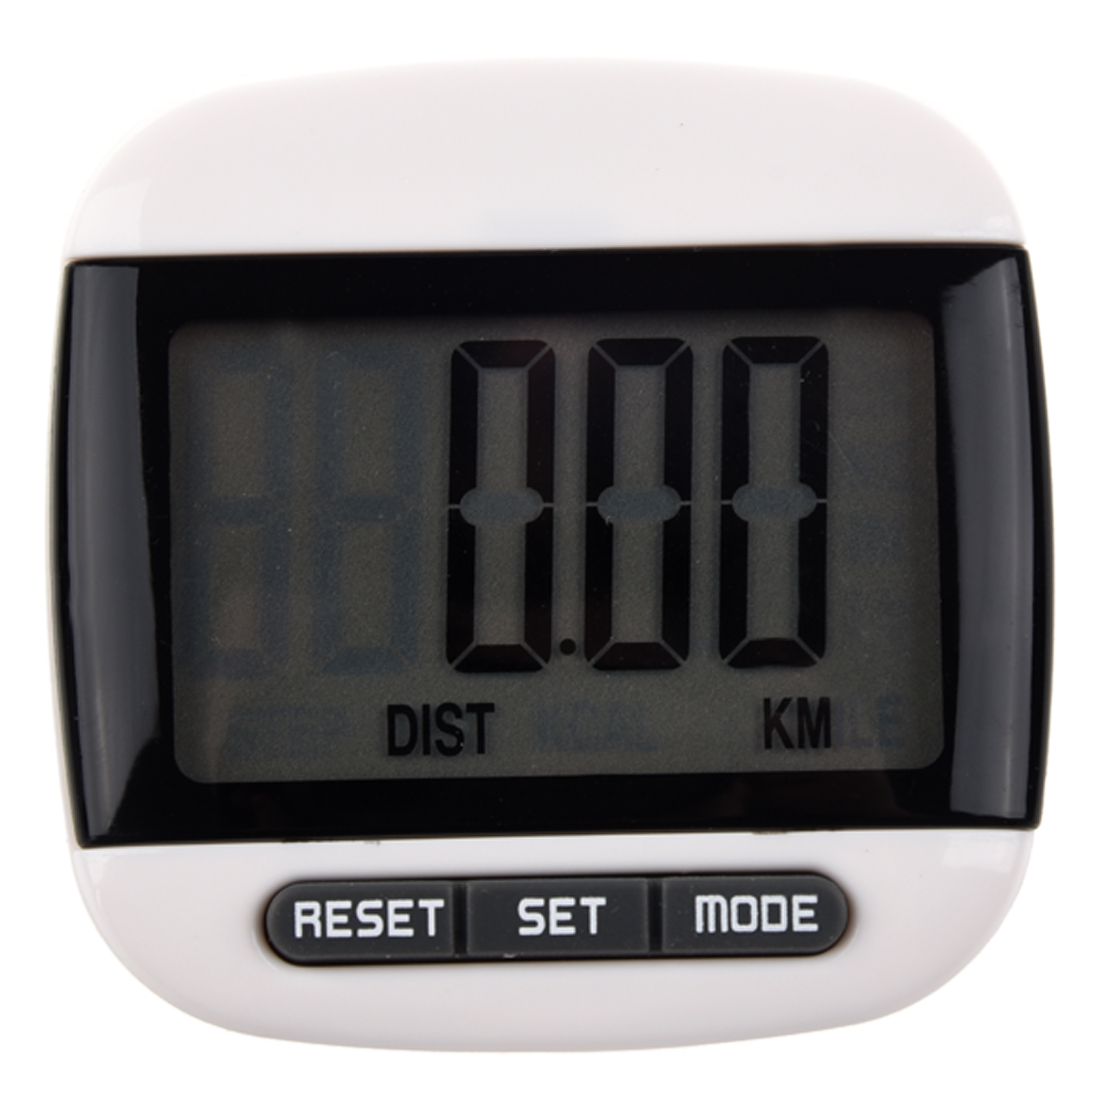 New Multi-function Pedometer Distance Calorie Counter 5 Steps Buffer Error Correction Large LCD Display with Belt